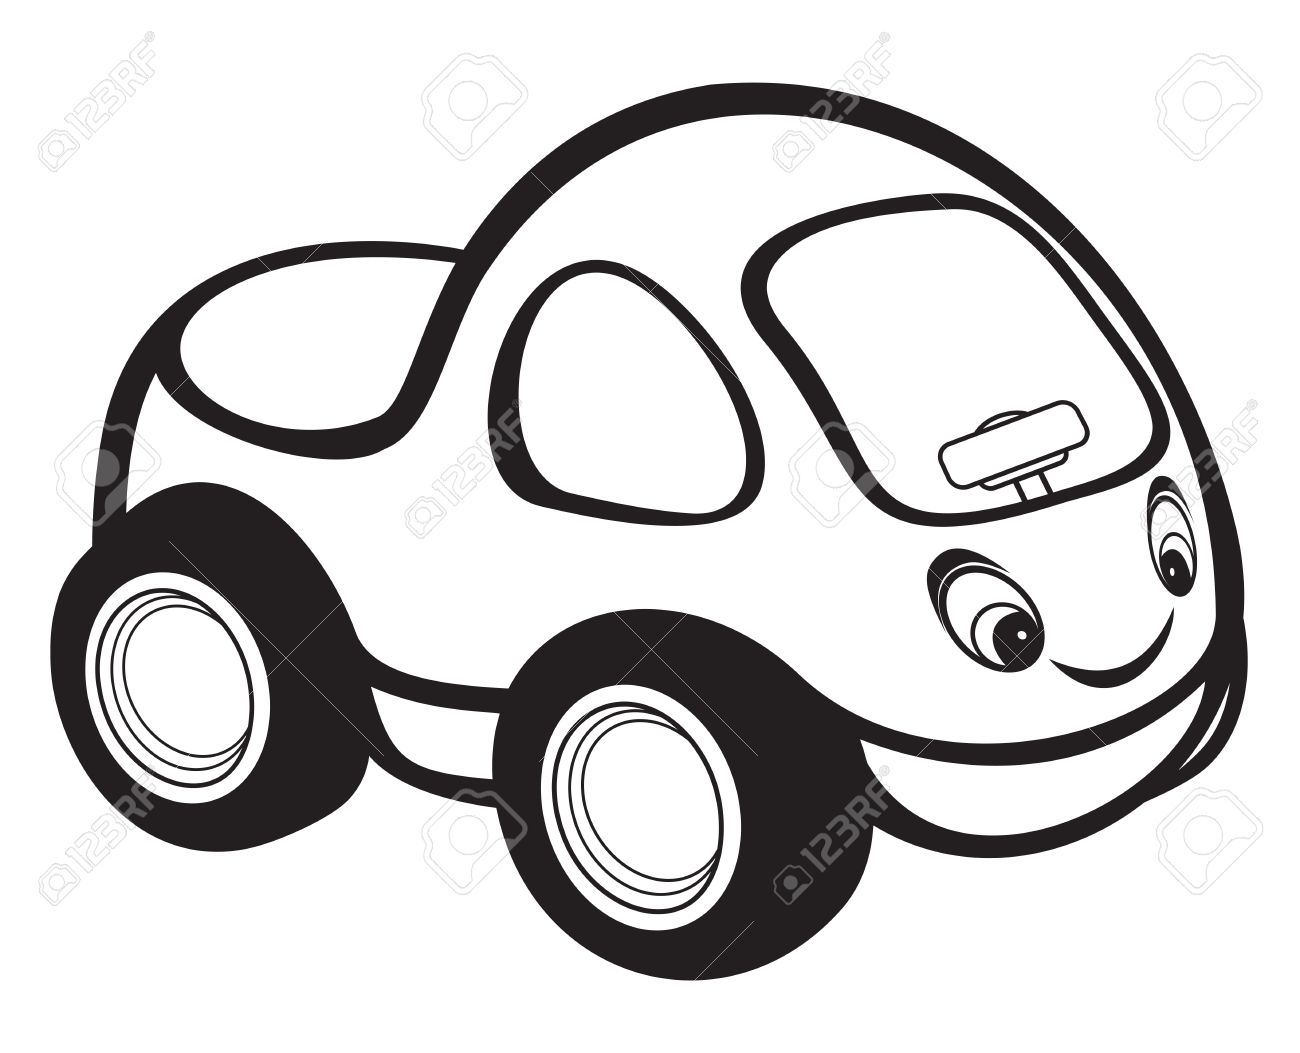 Simple wooden car clipart black and white svg free stock Race Car Clipart Black And White | Free download best Race Car ... svg free stock